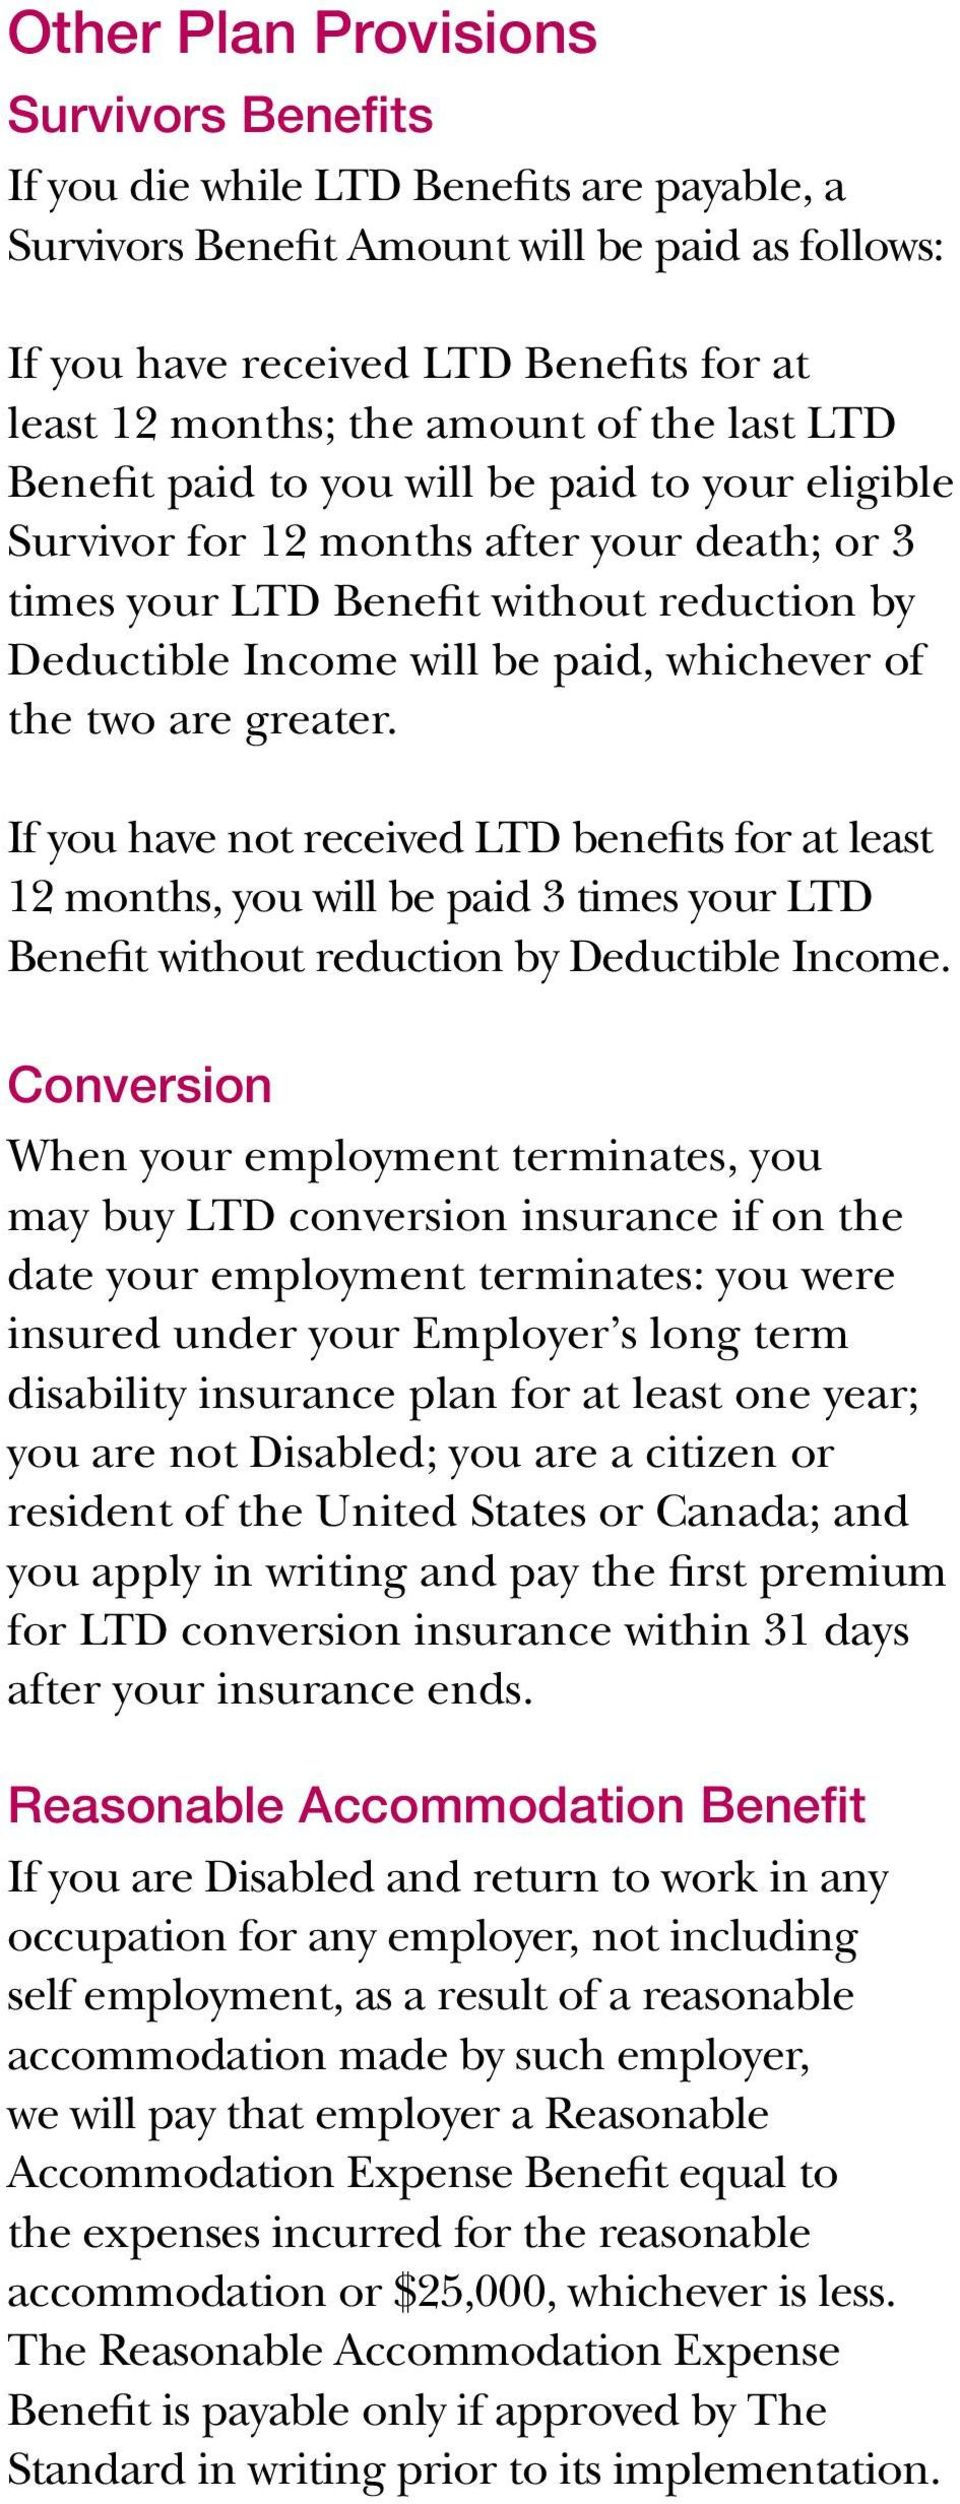 whichever of the two are greater. If you have not received LTD benefits for at least 12 months, you will be paid 3 times your LTD Benefit without reduction by Deductible Income.